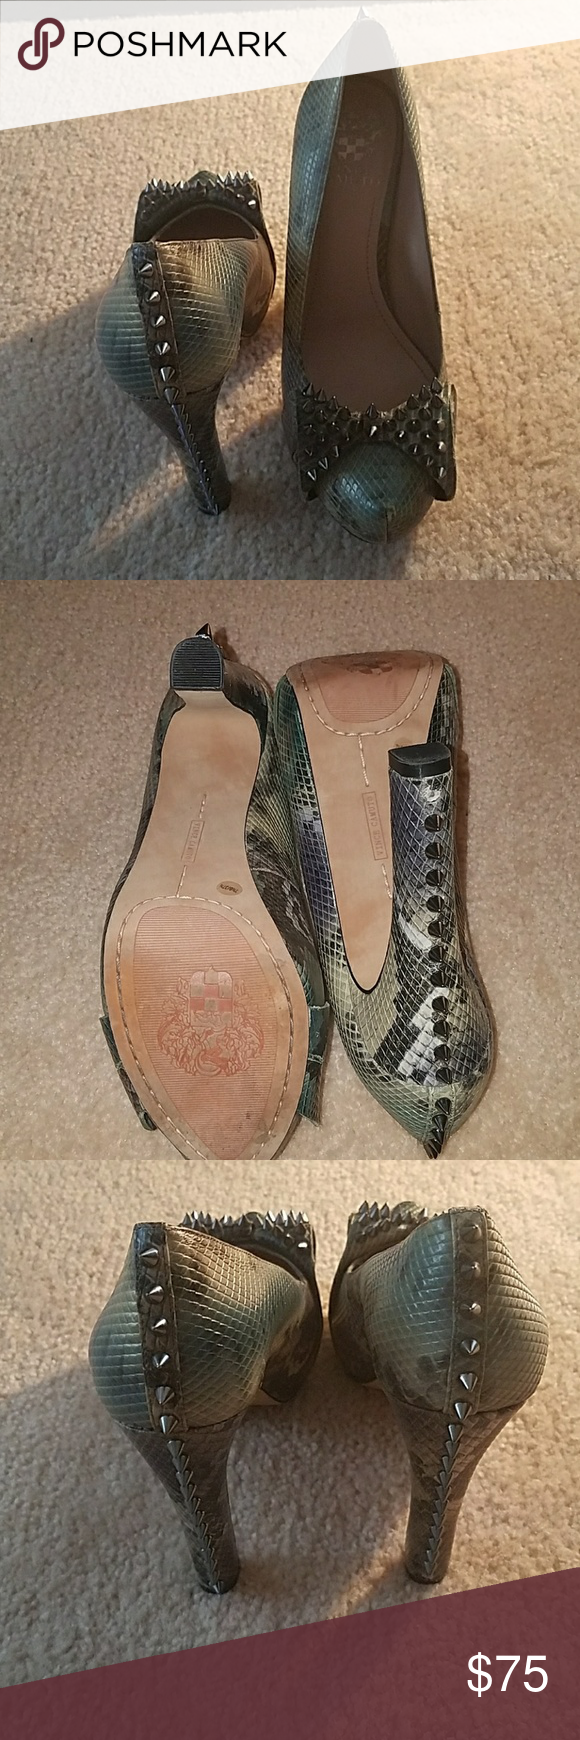 Spiked Heels Snake pattern Heels worn once !!! Fashion statement Vince Camuto Shoes Heels